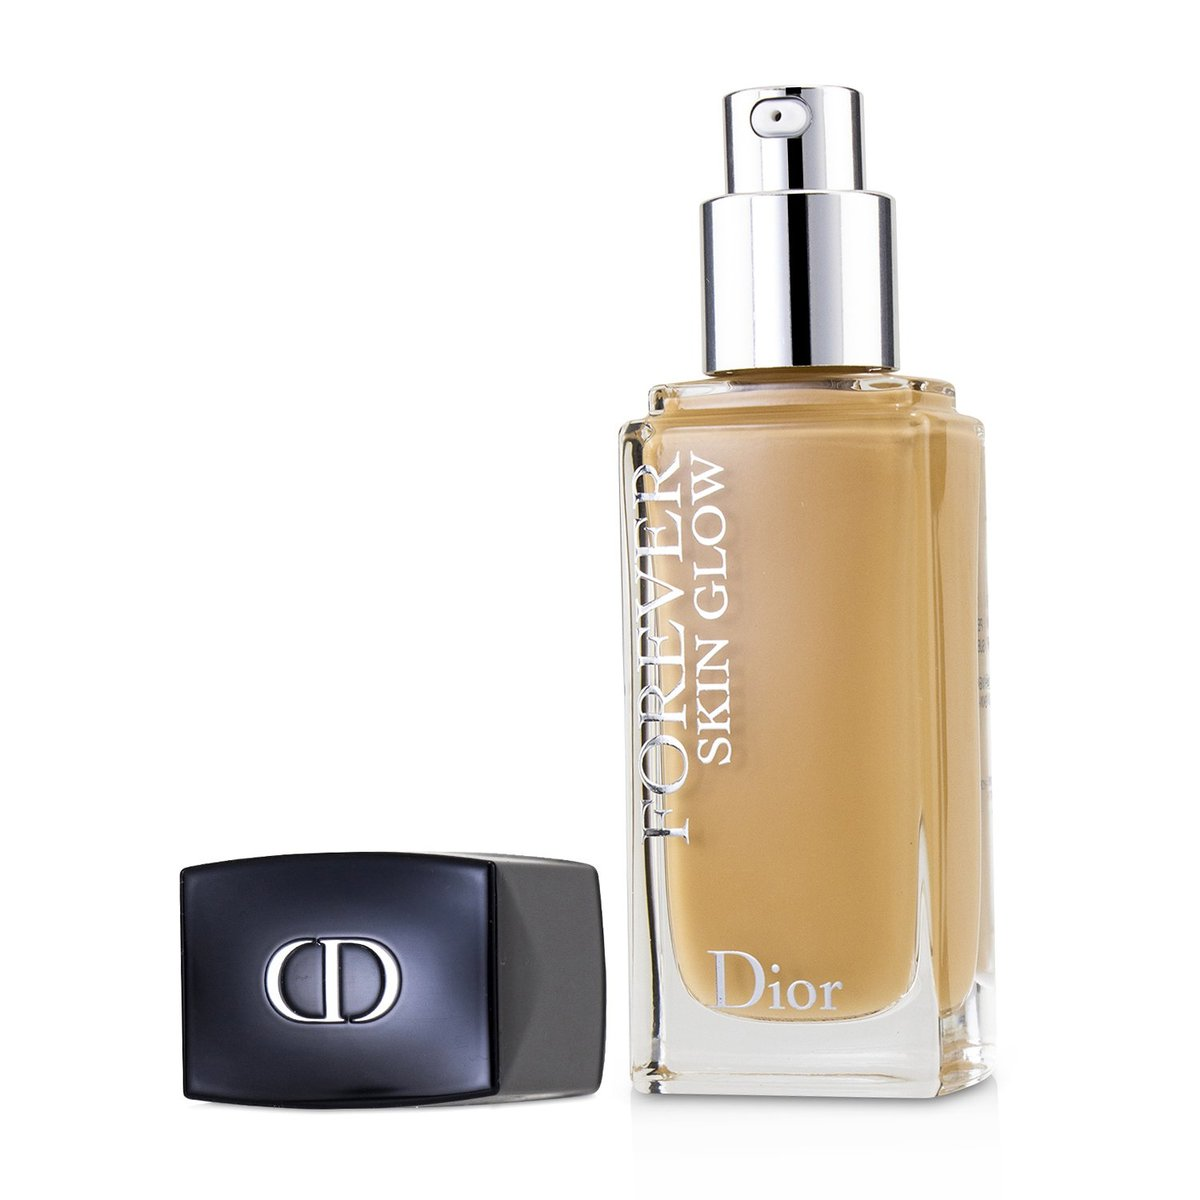 Dior Forever Skin Glow 24H Wear High Perfection Foundation SPF 35 - # 3W (Warm) [Parallel Import Pro